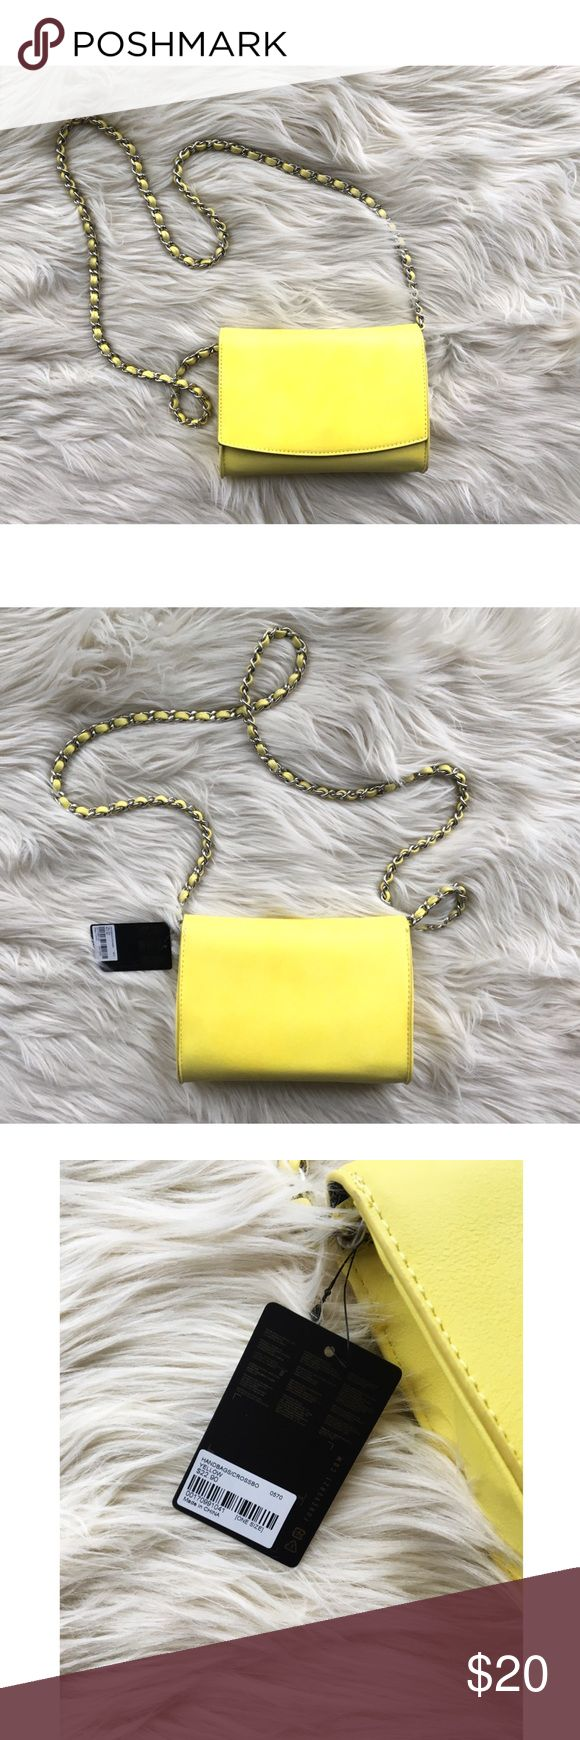 Forever 21 | Mini Neon Yellow Crossbody Bag NWT Forever 21 | Neon Yellow Crossbody handBag. Braided metal strap. New with tags! Never used, still has original stuffing. Perfect for spring and summer! Forever 21 Bags Crossbody Bags